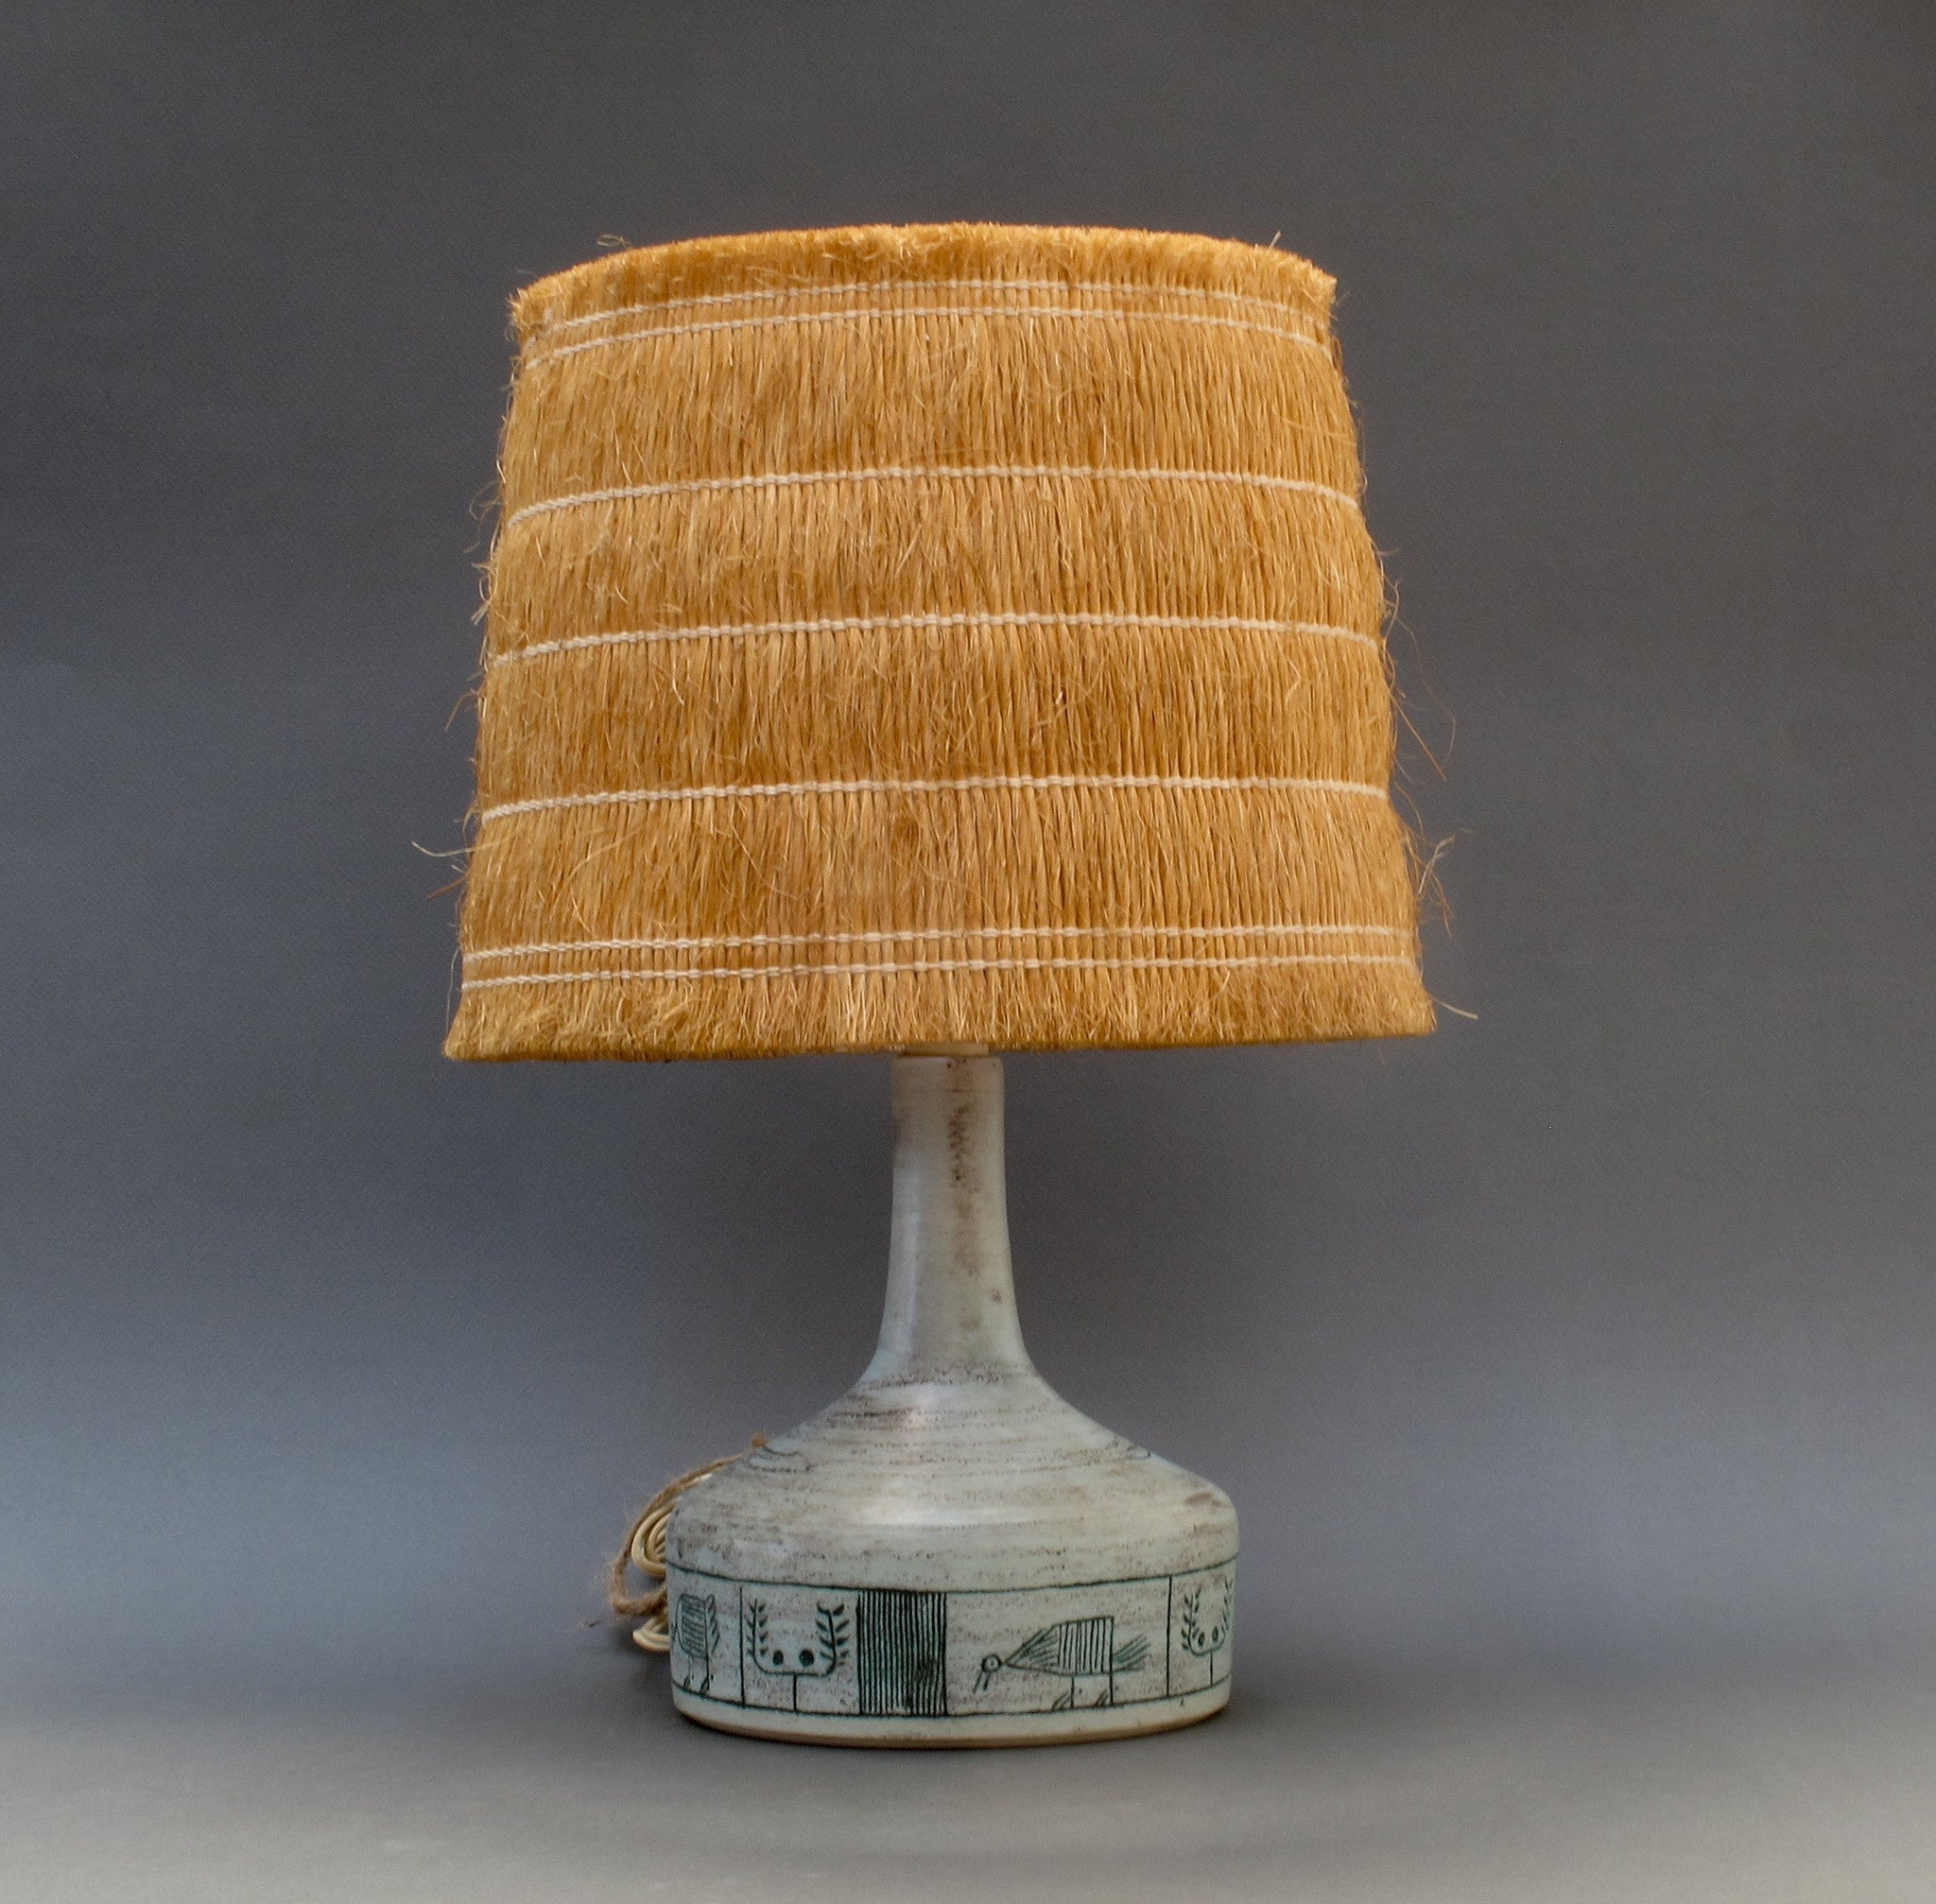 Ceramic Lamp by Jacques Blin with Original Raffia Shade (c. 1950s)